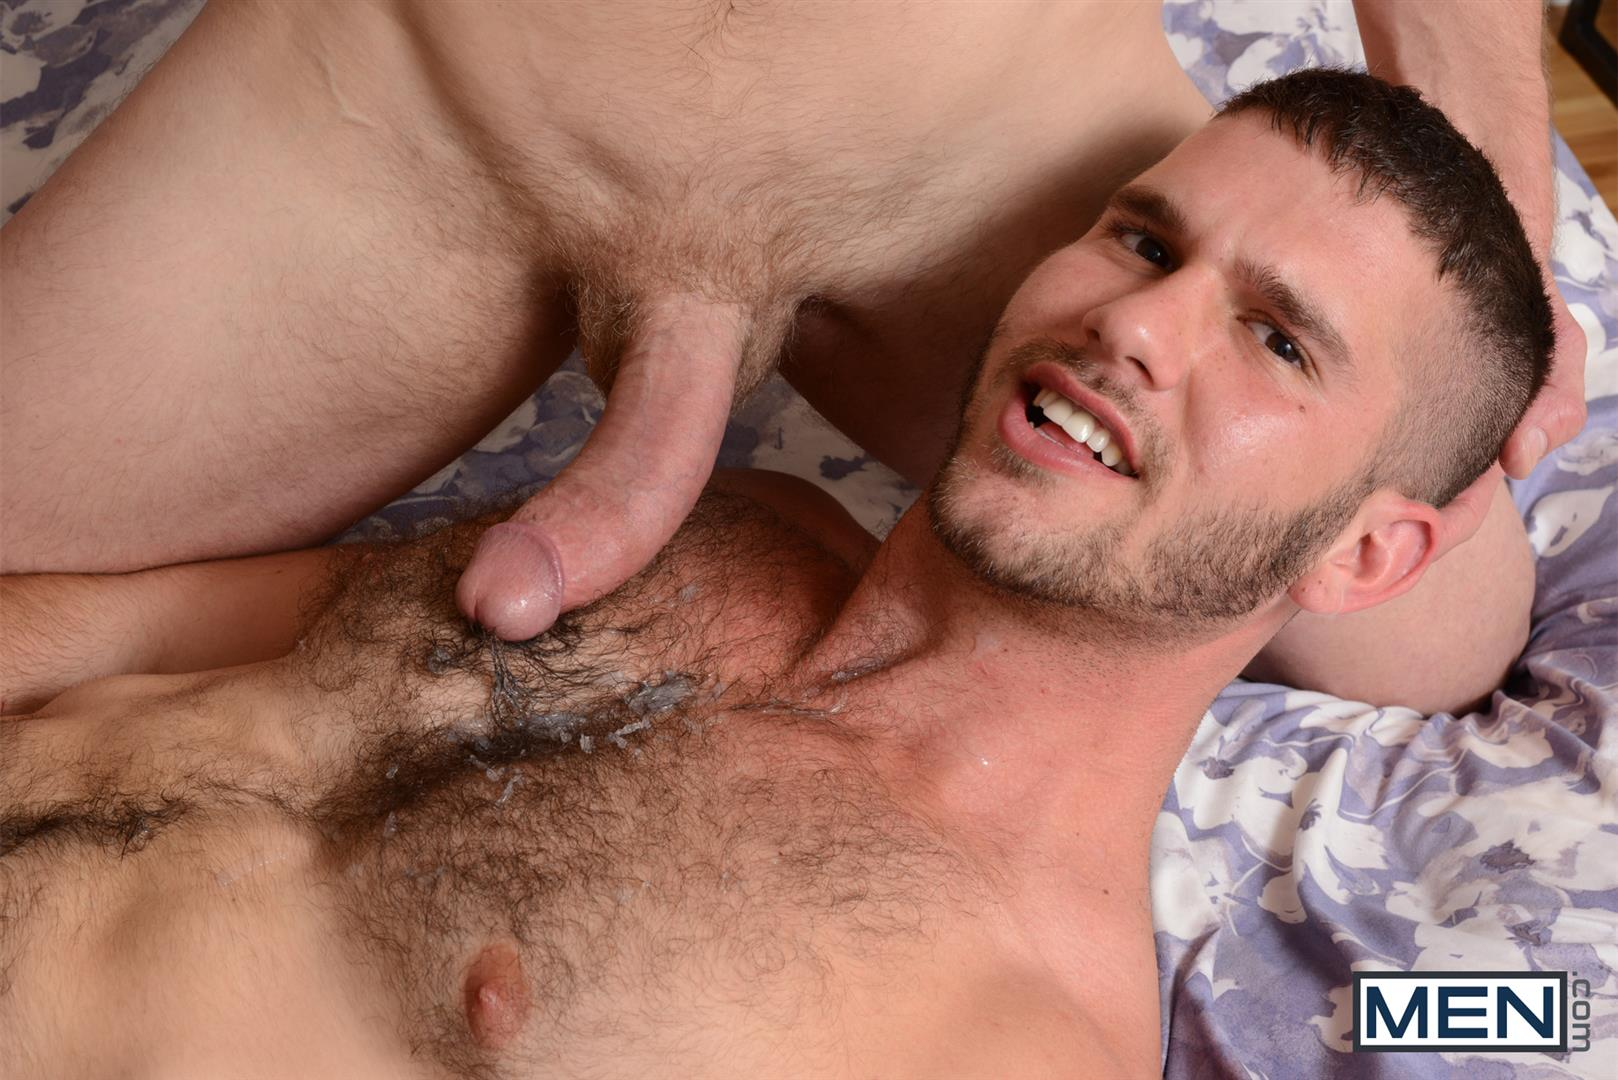 Men Drill My Hole Adam Herst and Jimmy Fanz Hairy Muscle Jock Getting Fucked Amateur Gay Porn 19 Hairy Muscle Hunk Jimmy Fanz Gets Fucked Hard By Adam Herst